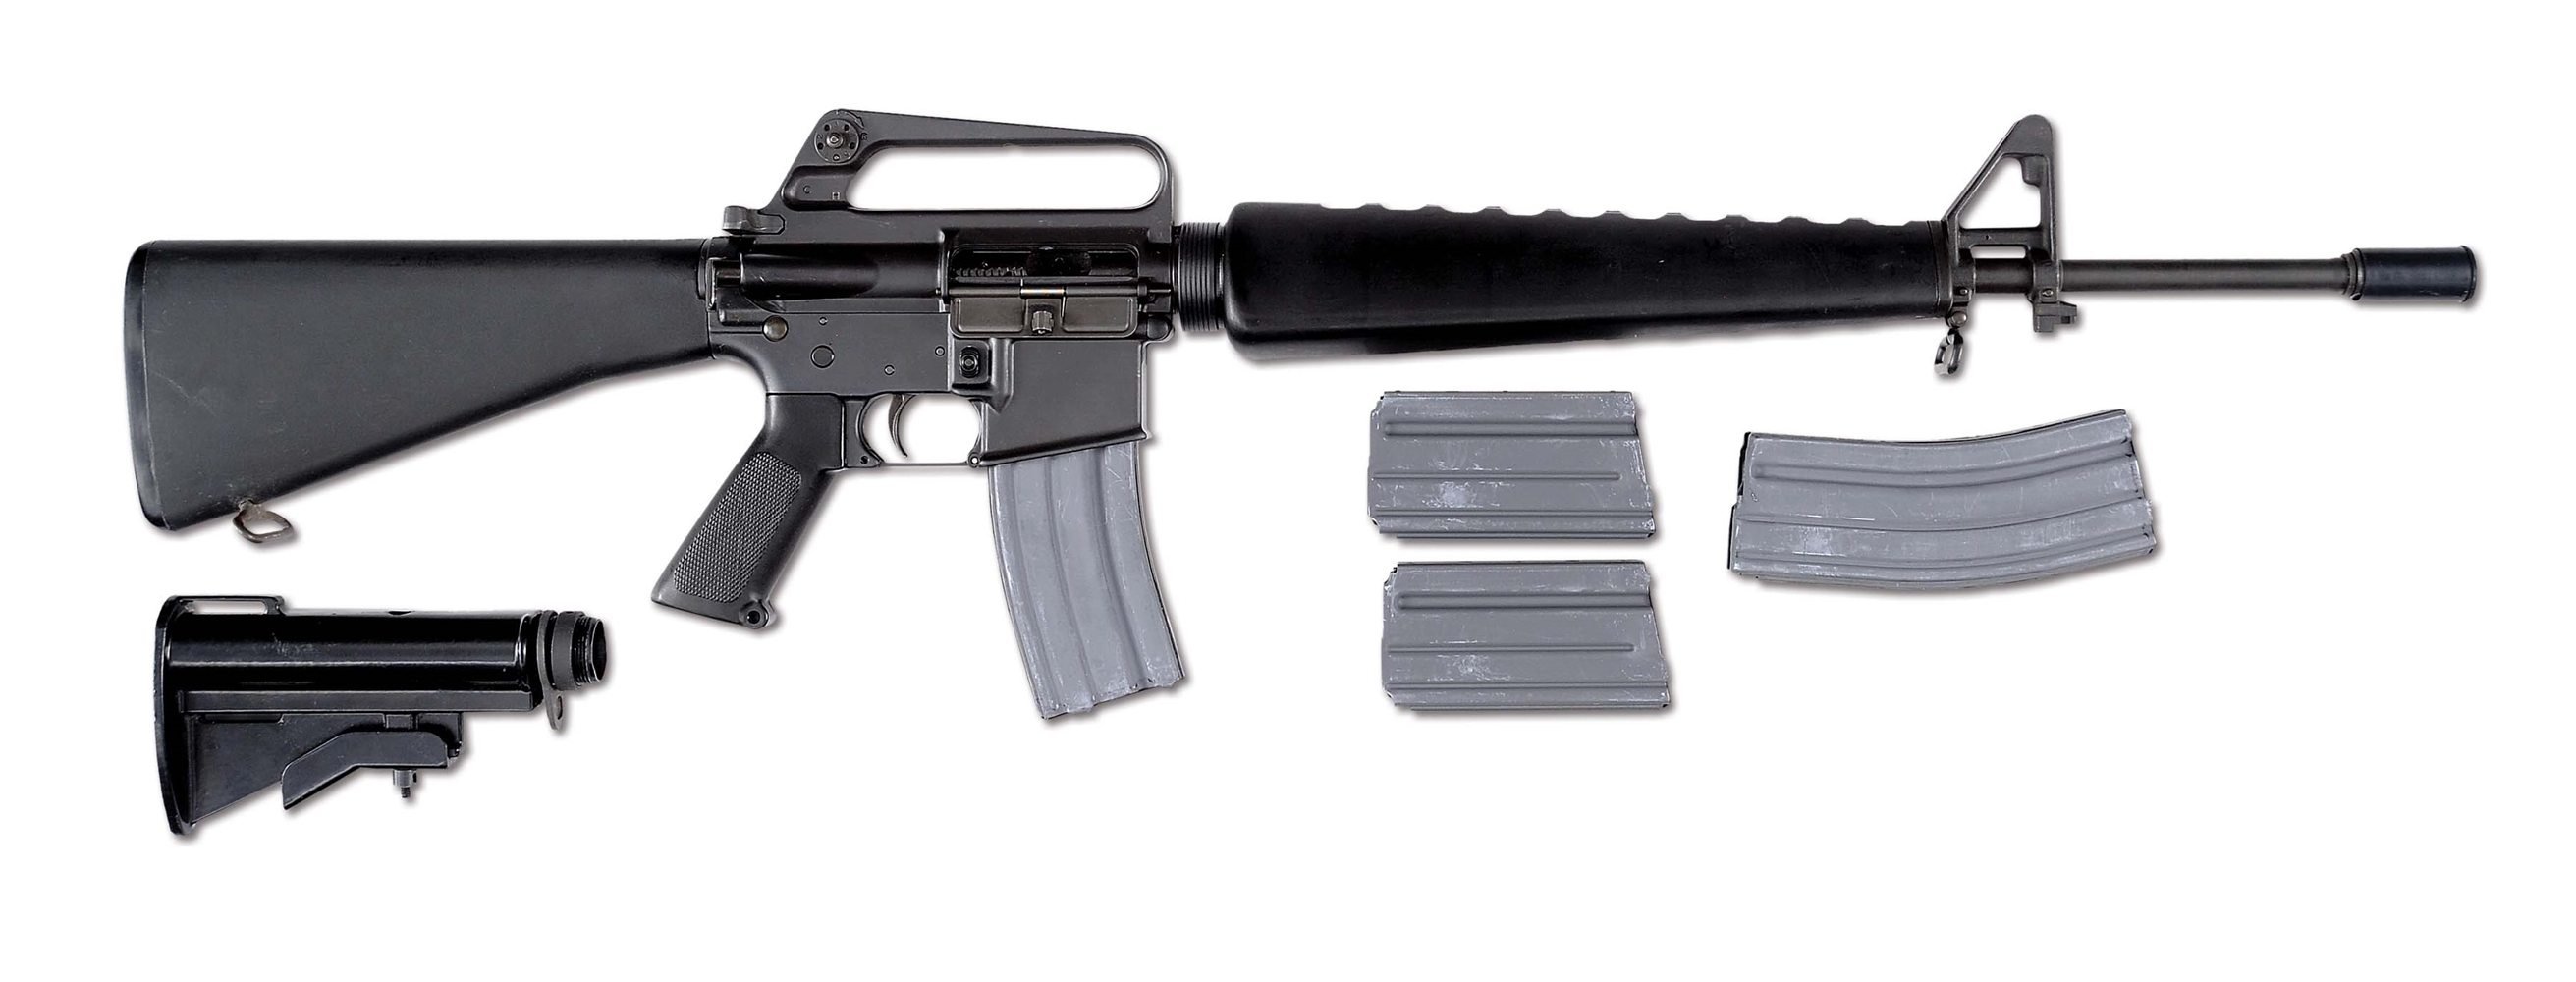 (N) OUTSTANDING CONDITION COLT M16A1 MACHINE GUN AS MADE FOR THE COMMERCIAL MARKET (FULLY TRANSFERABLE).